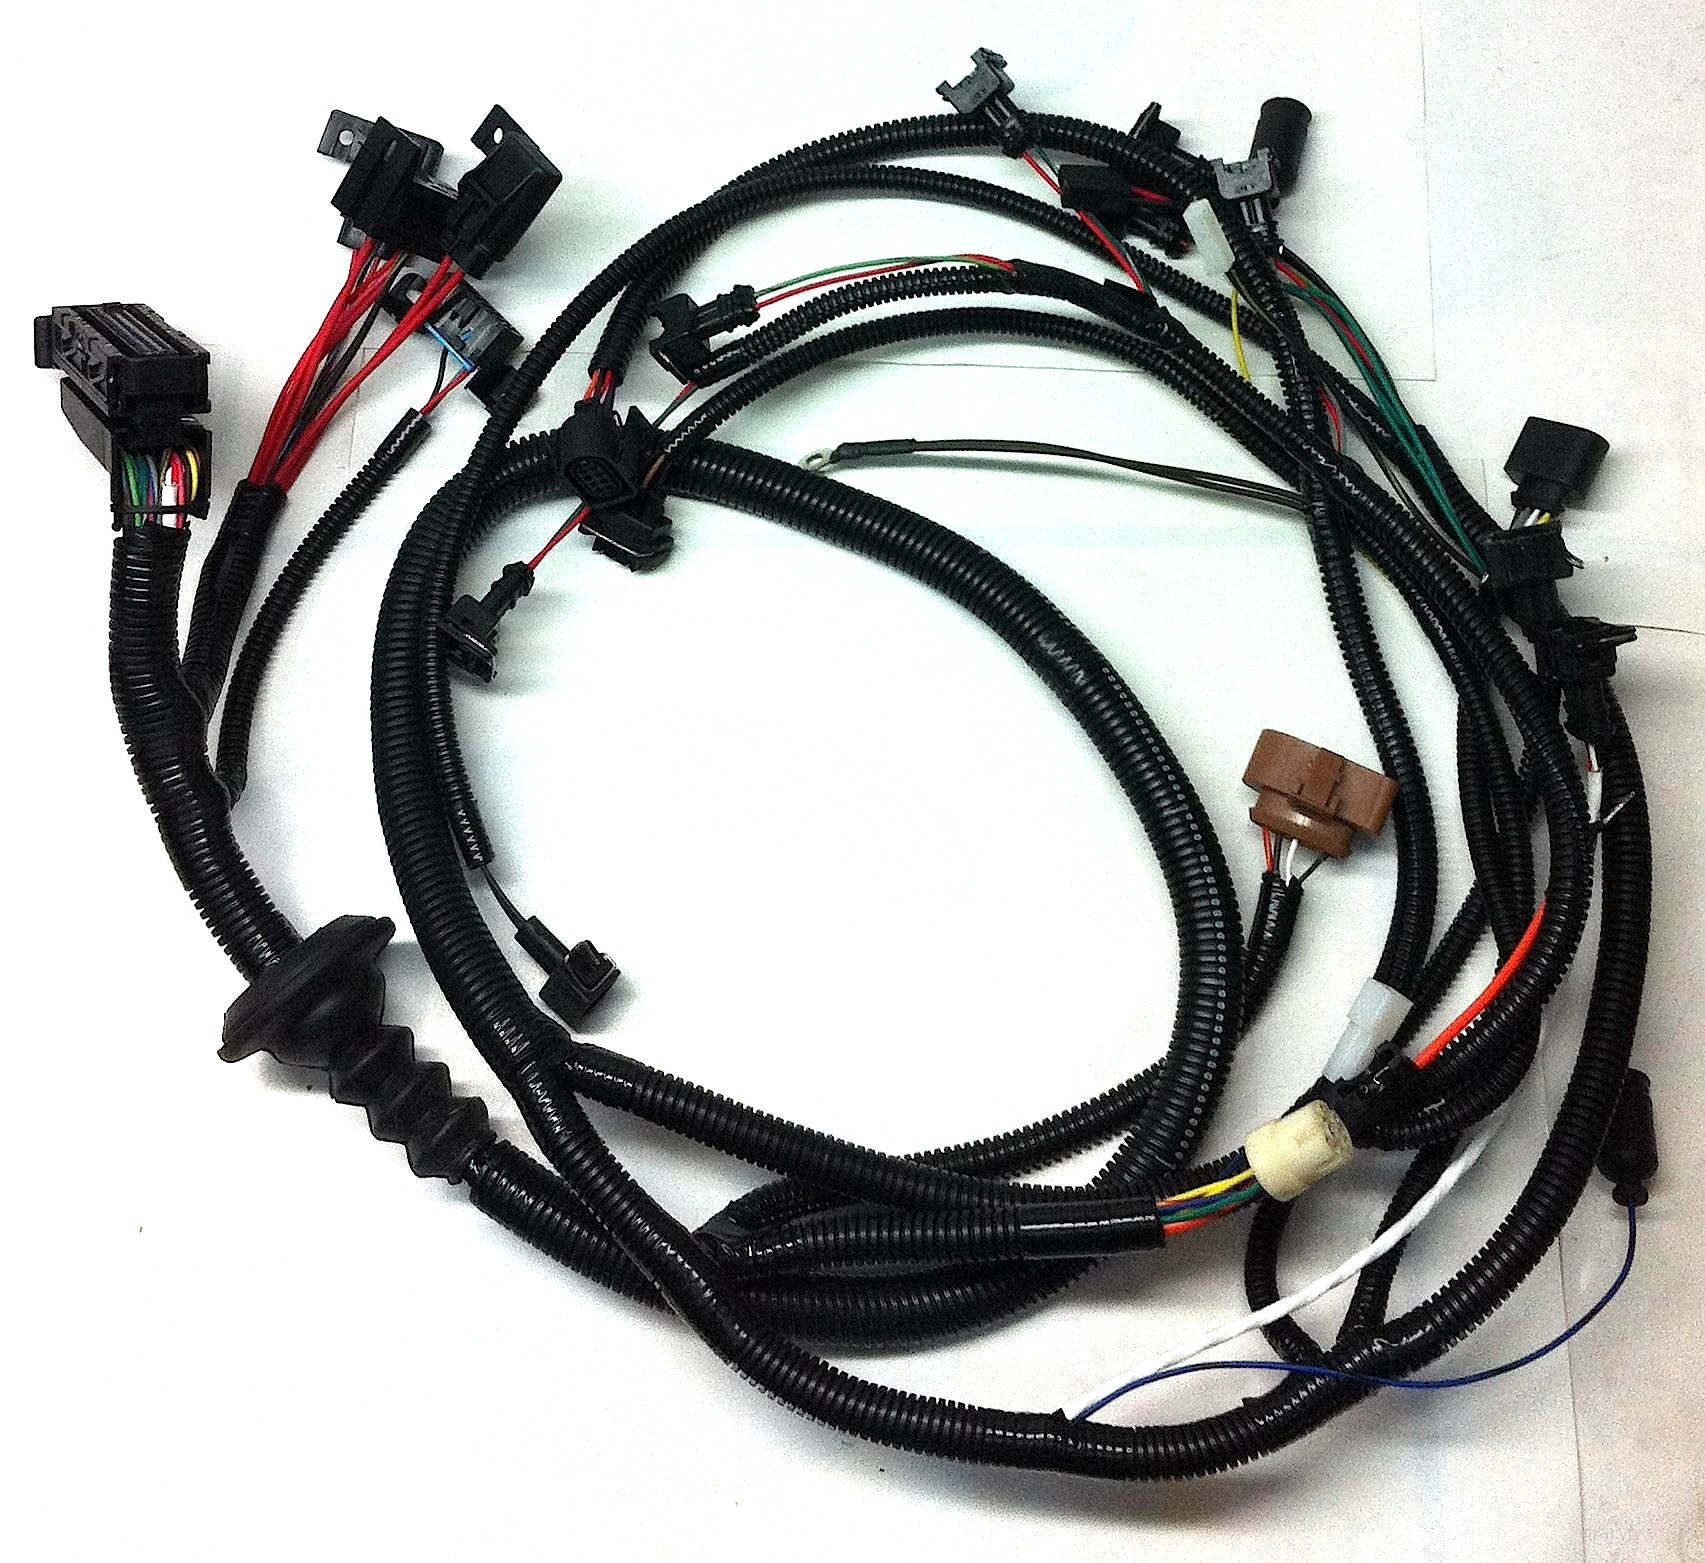 Wiring_Harness_2LR 2lr tiico conversion wiring harness foreign auto & supply, inc automotive wiring harness at reclaimingppi.co